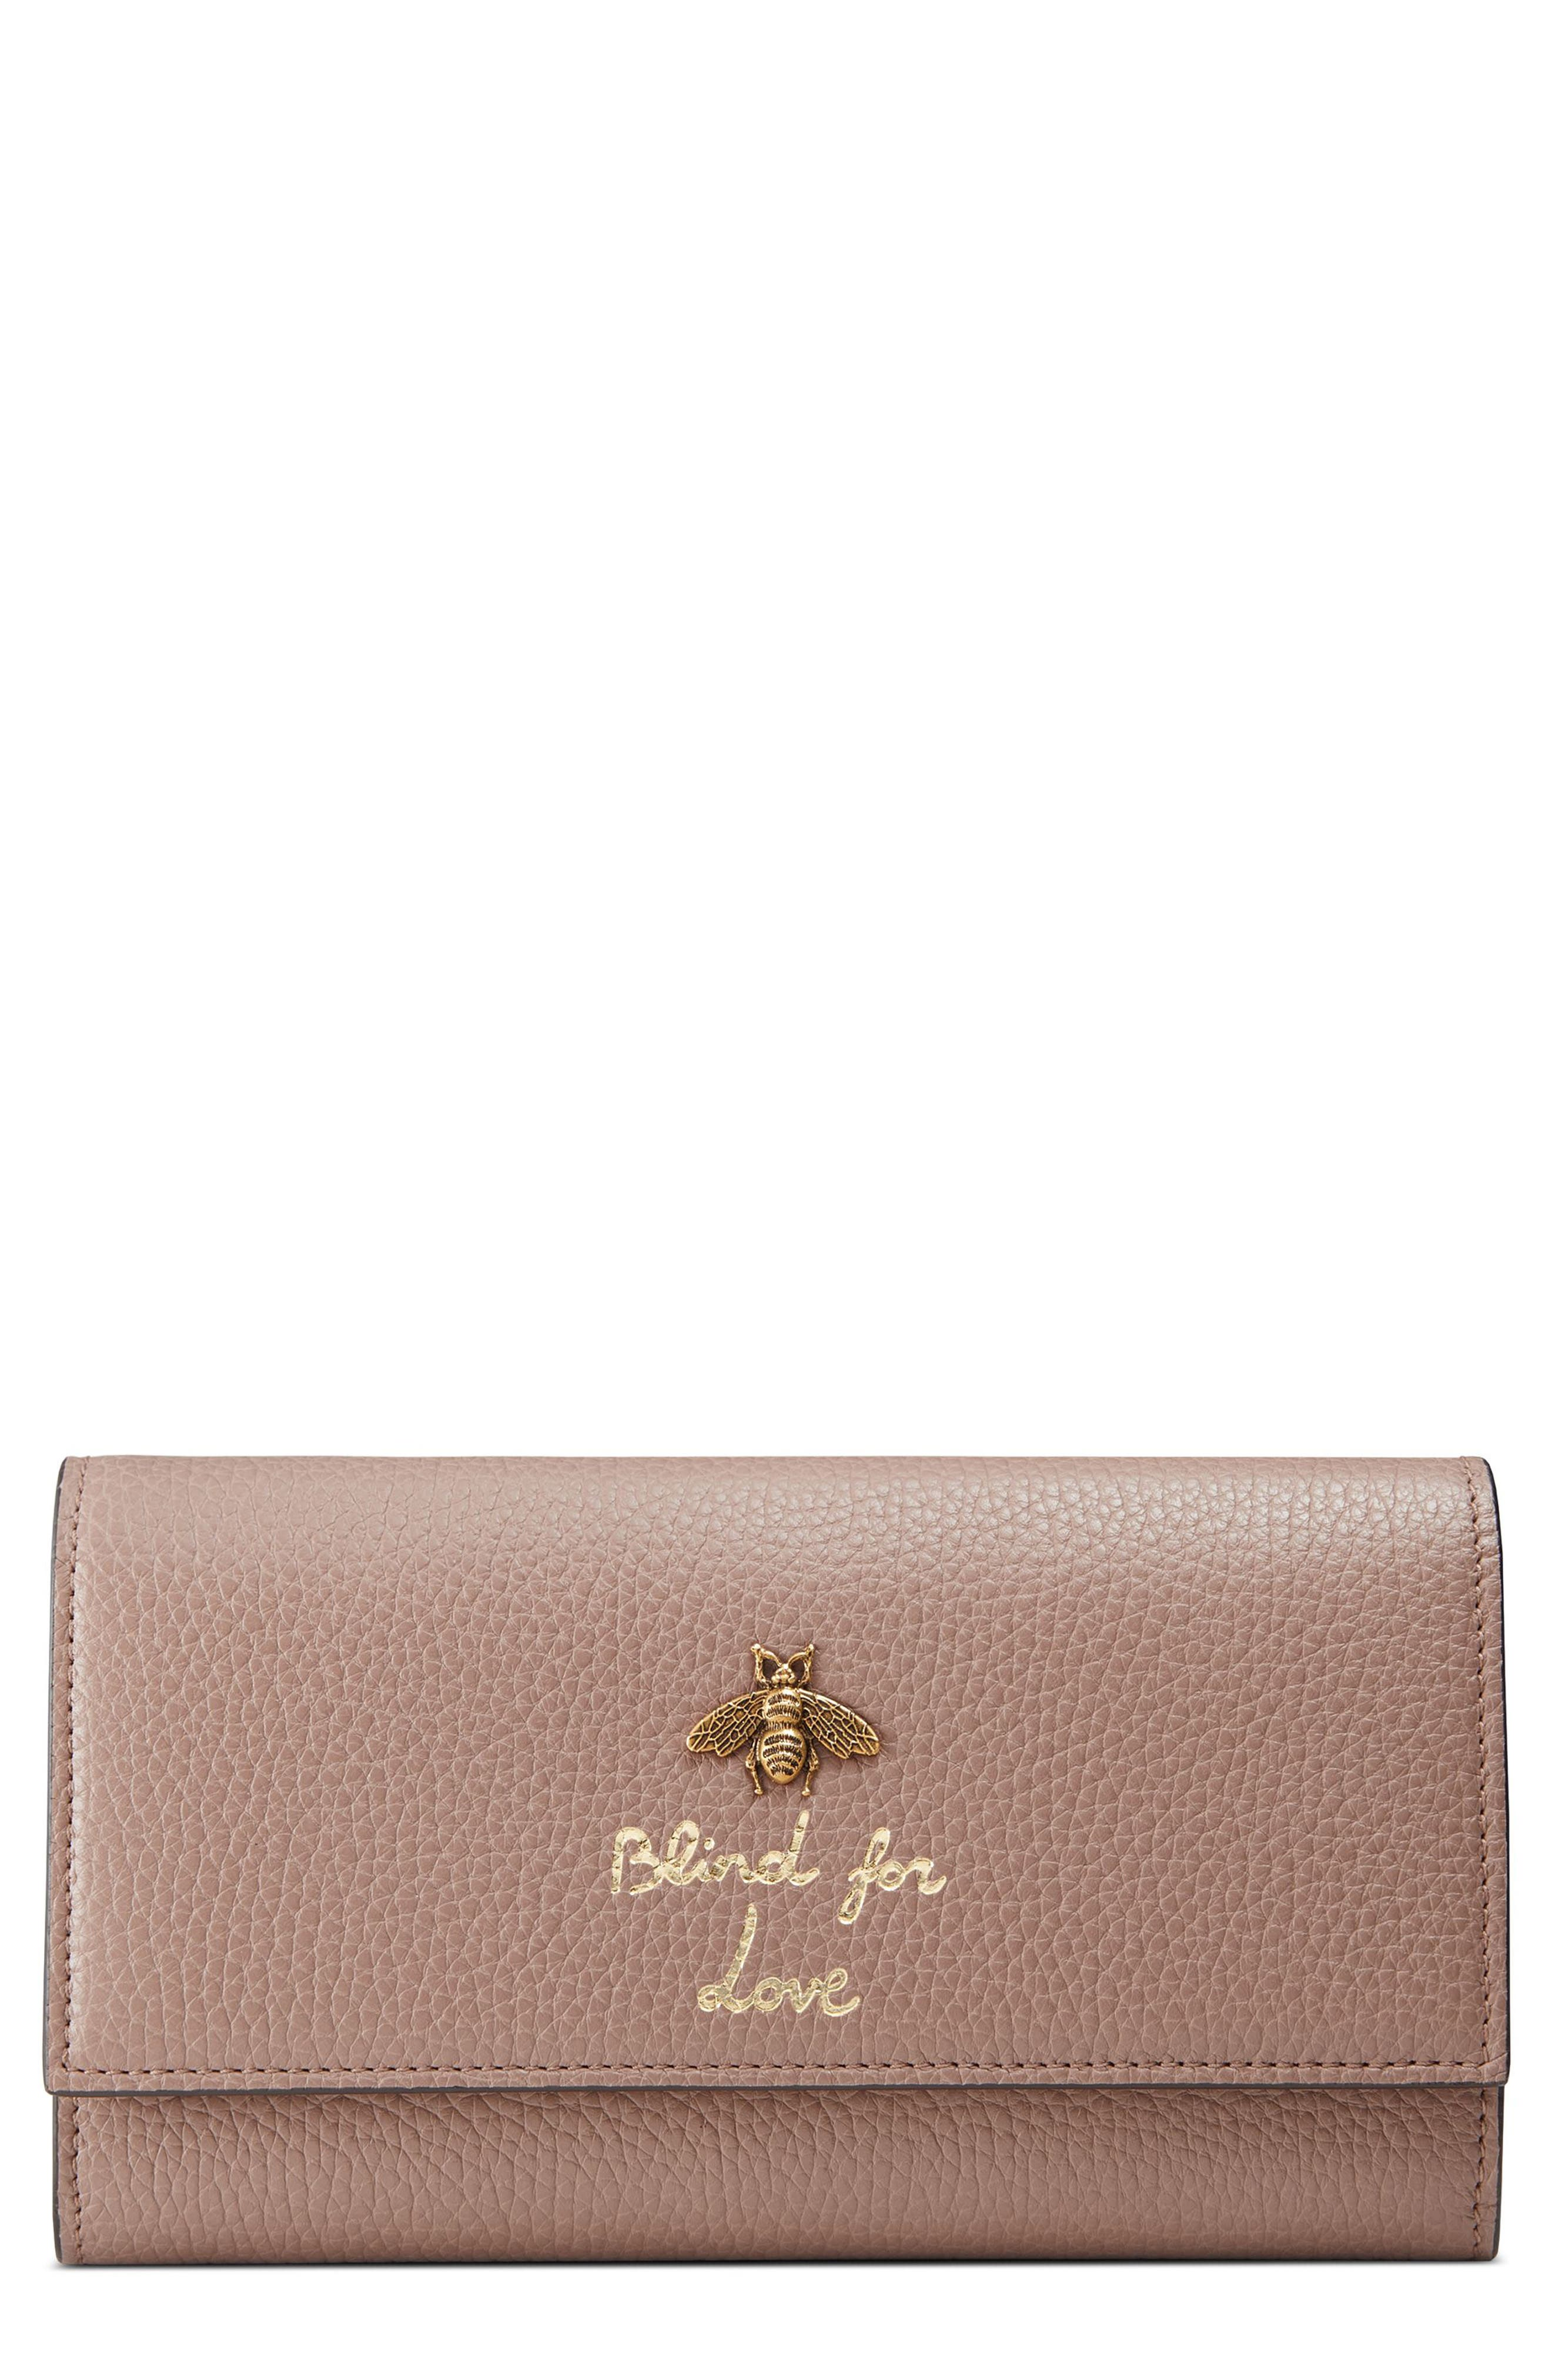 Gucci Wallets & Card Cases for Women   Nordstrom